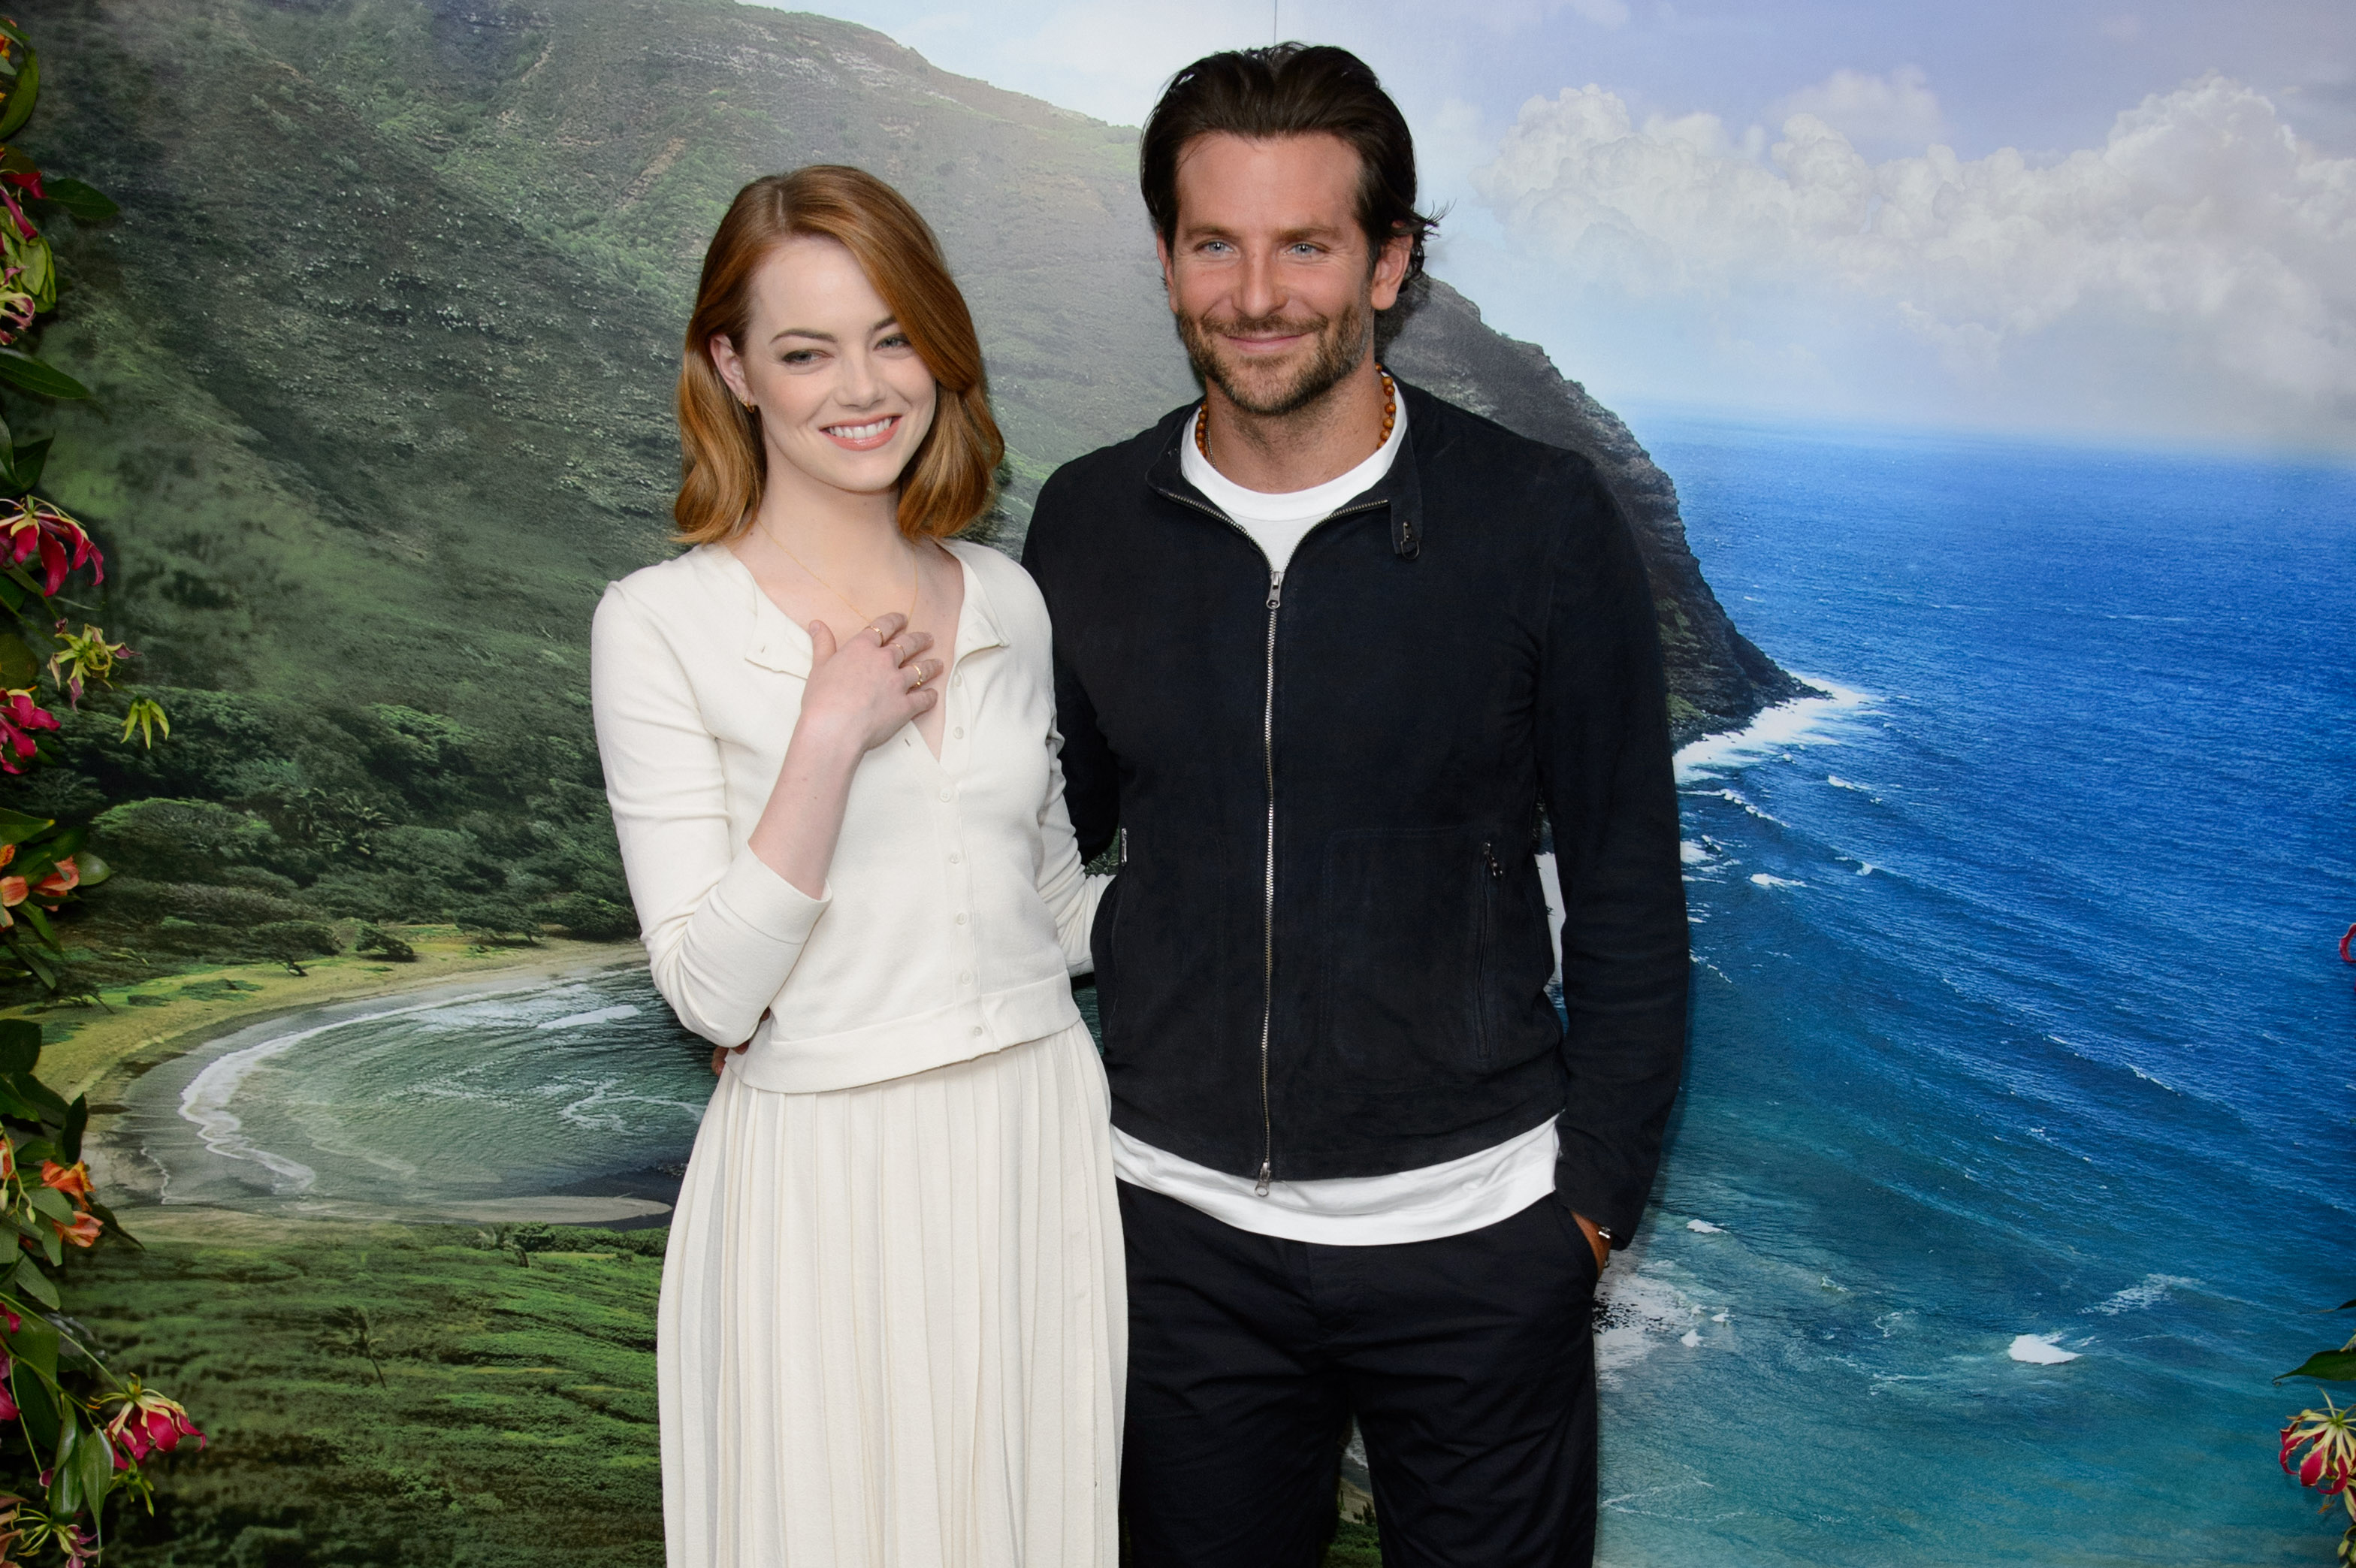 U.S actress Emma Stone and U.S actor Bradley Cooper pose for photographers at a photocall for Aloha at a central London venue, on May 16, 2015.